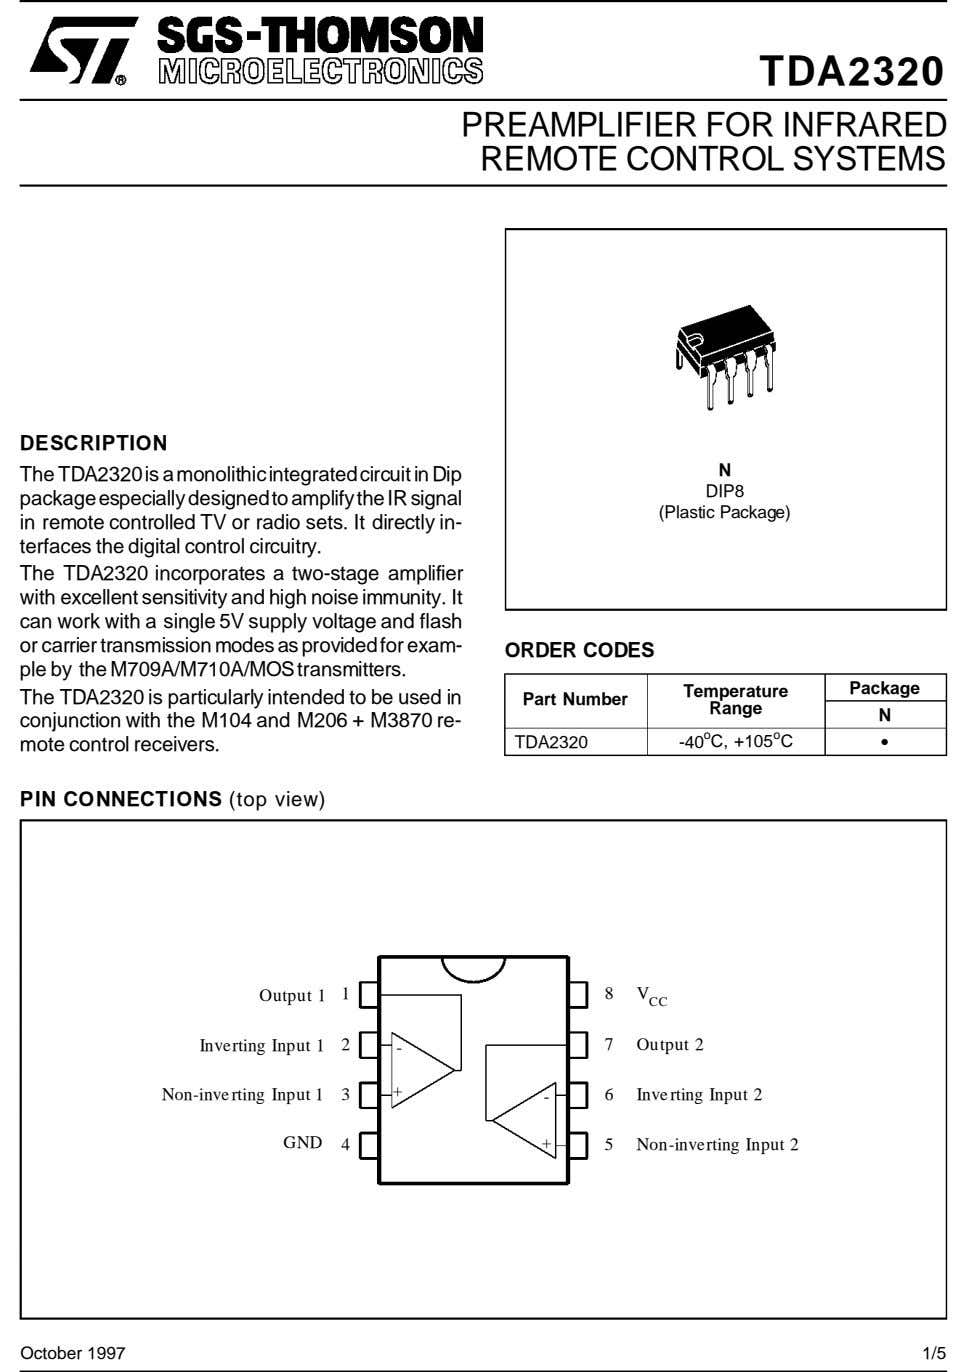 TDA2320 PREAMPLIFIER FOR INFRARED REMOTE CONTROL SYSTEMS DESCRIPTION The TDA2320is amonolithicintegratedcircuit in Dip